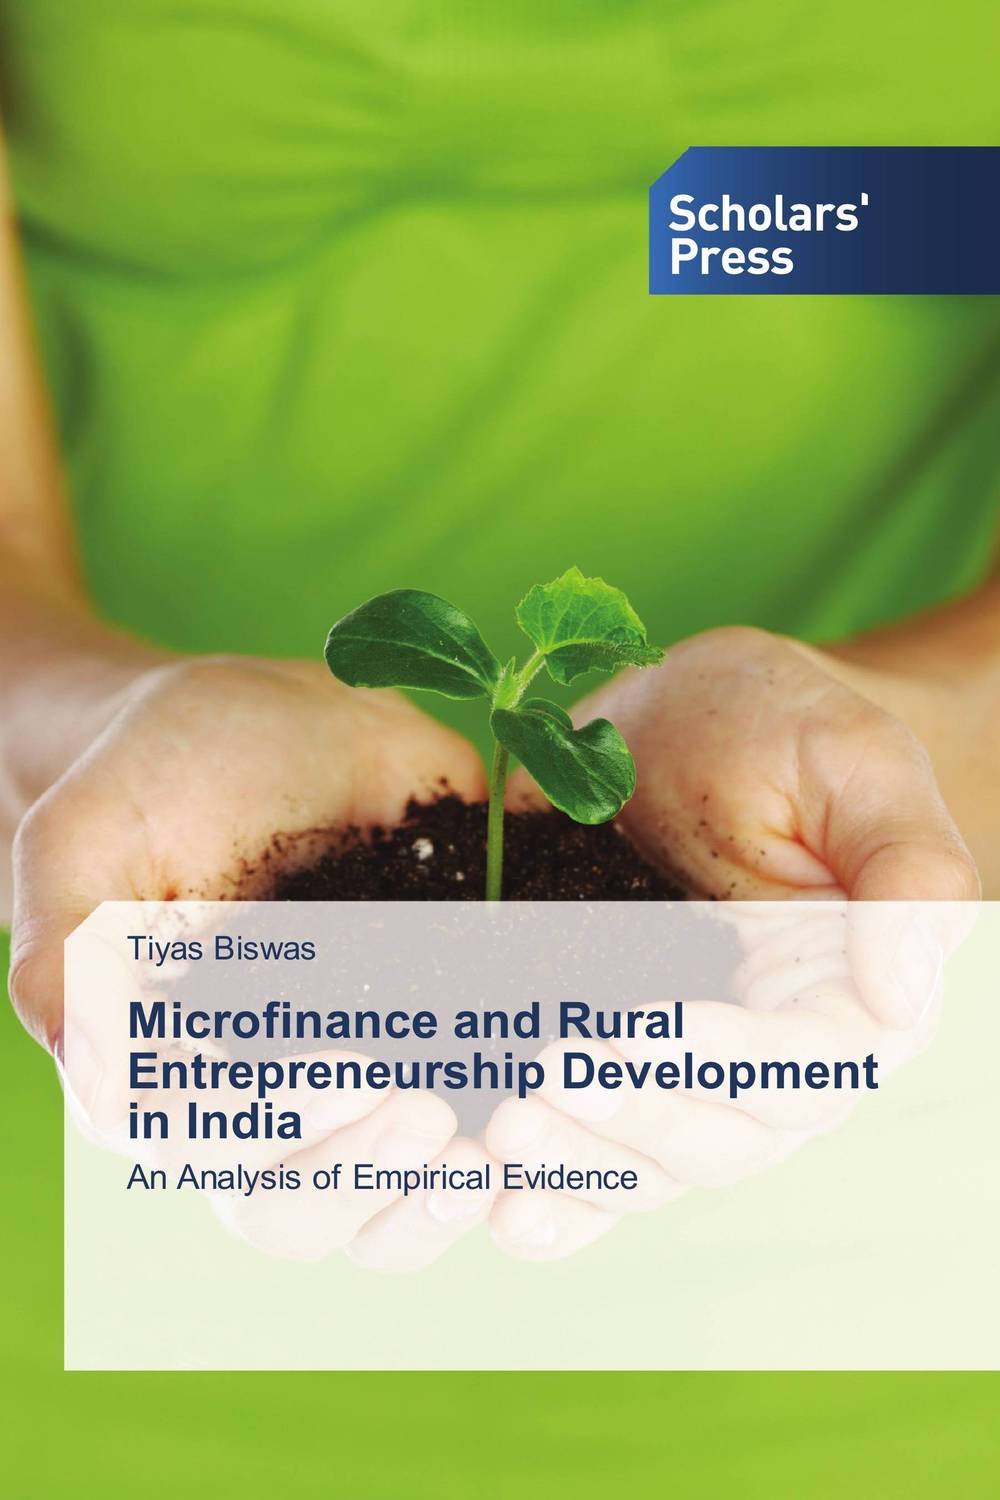 Microfinance and Rural Entrepreneurship Development in India micro finance in india